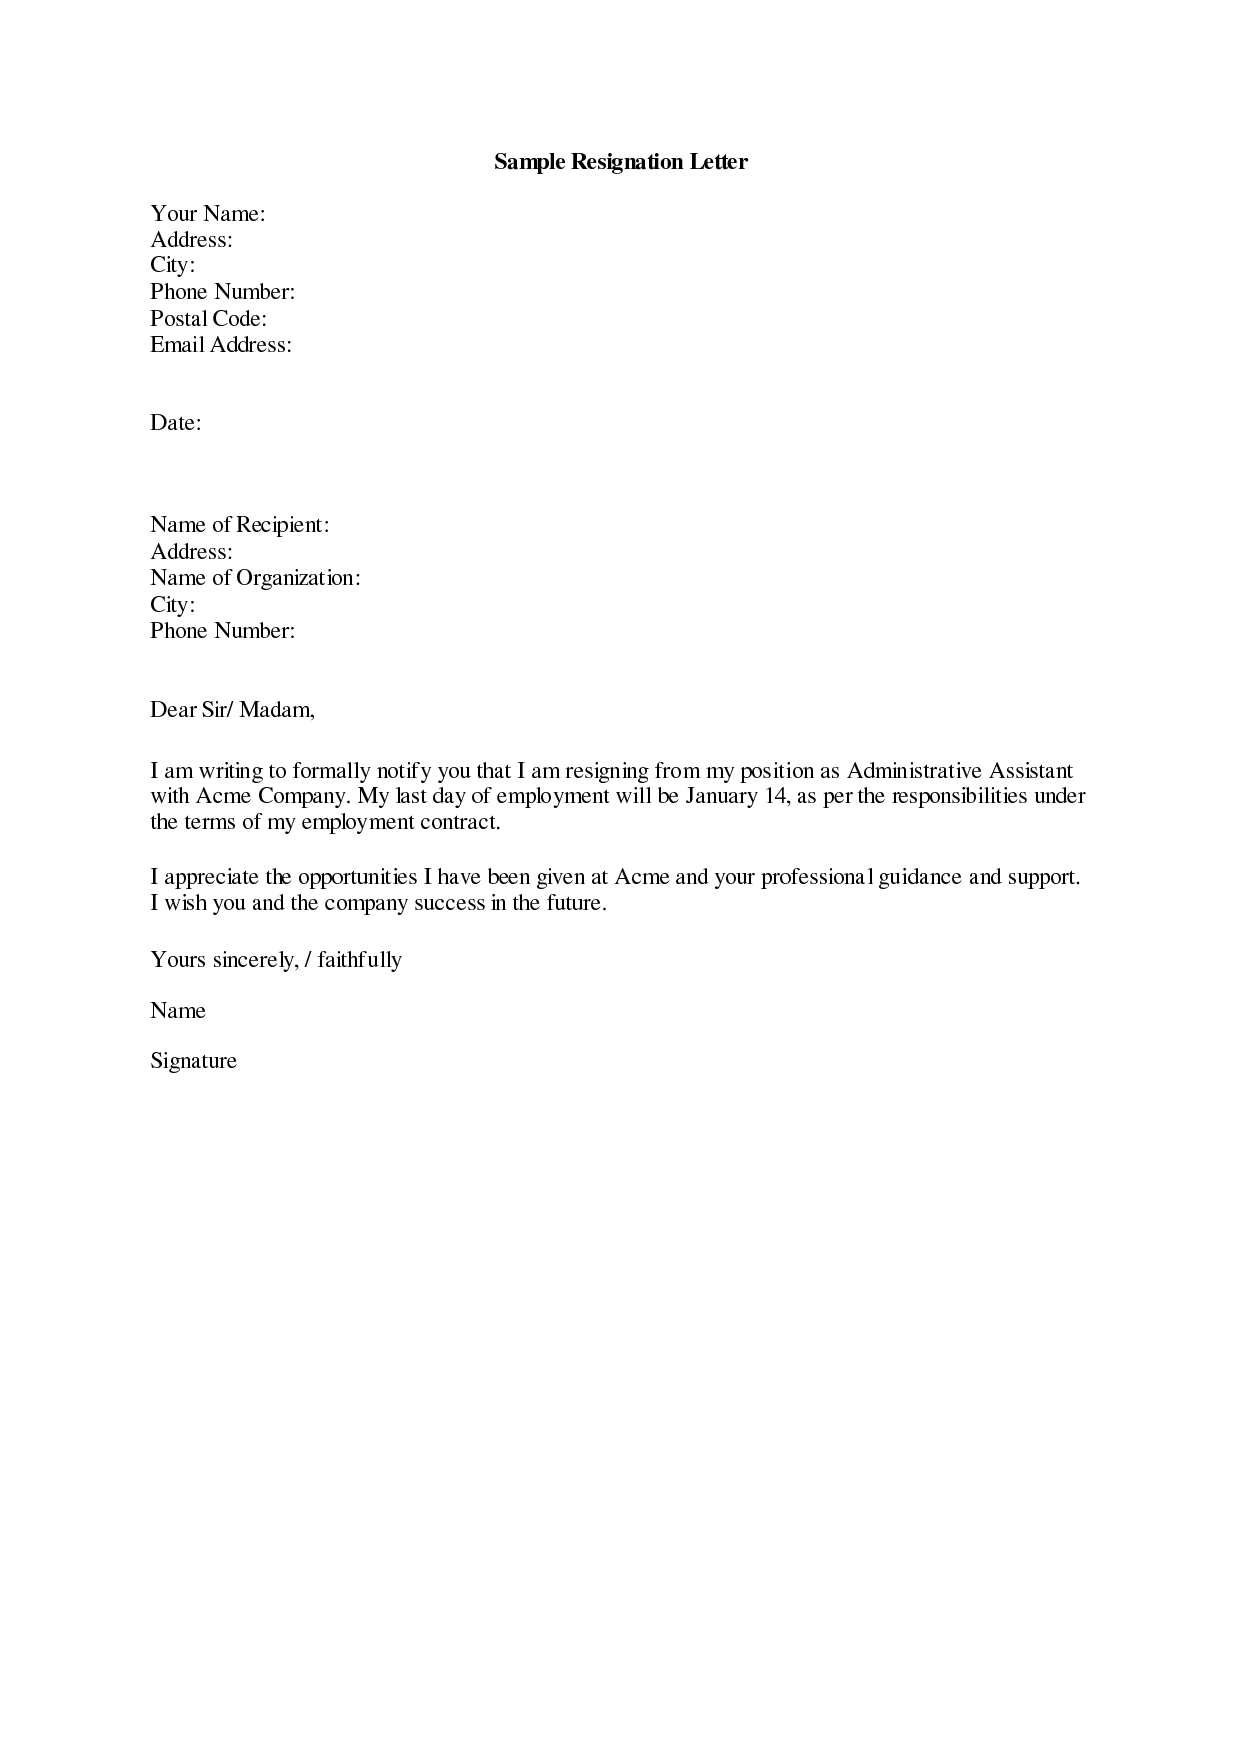 ResignationLetterSample    Letter Of Resignation  Arun